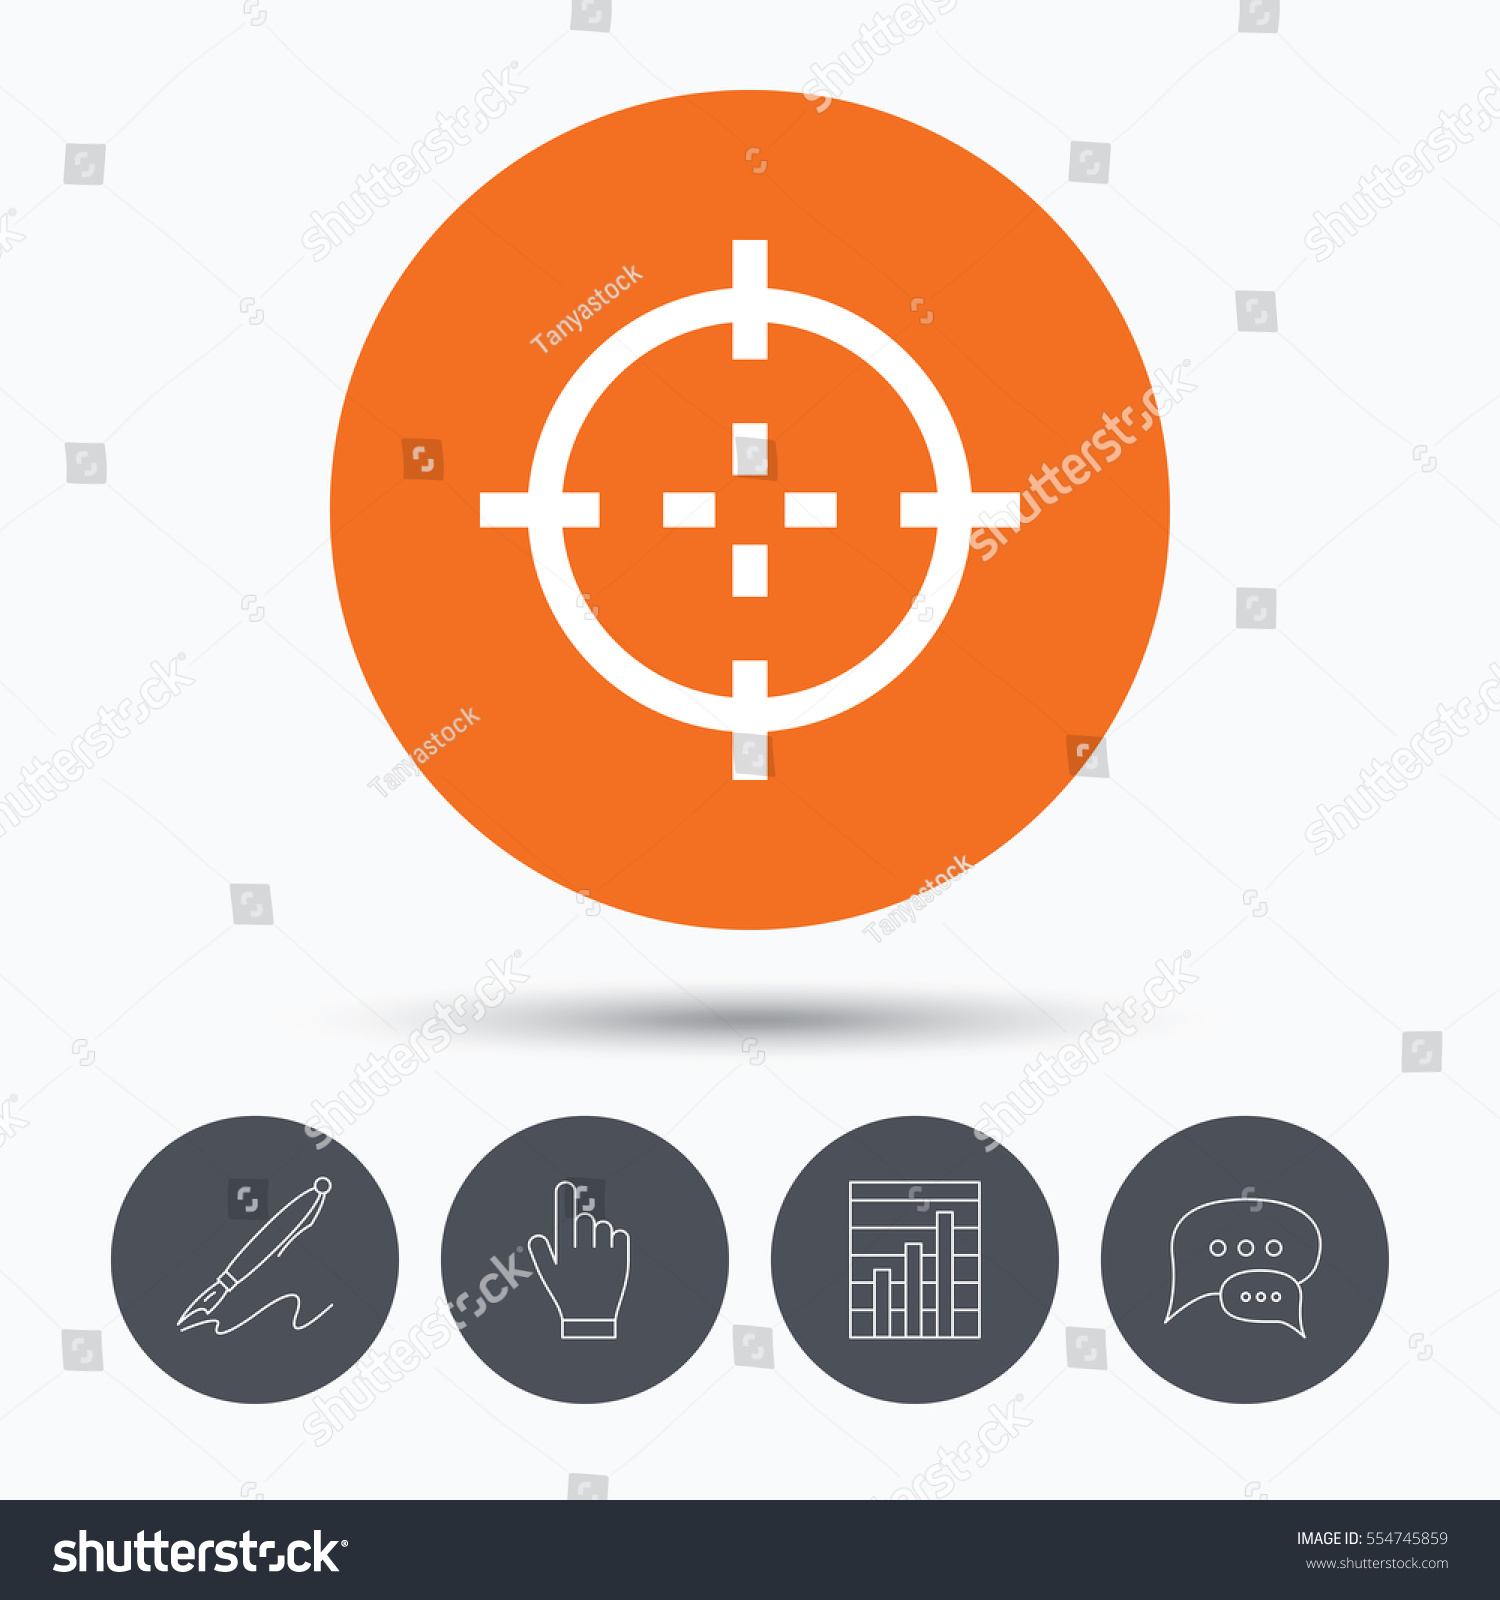 Target icon crosshair aim symbol speech stock illustration target icon crosshair aim symbol speech bubbles pen hand click and chart buycottarizona Image collections